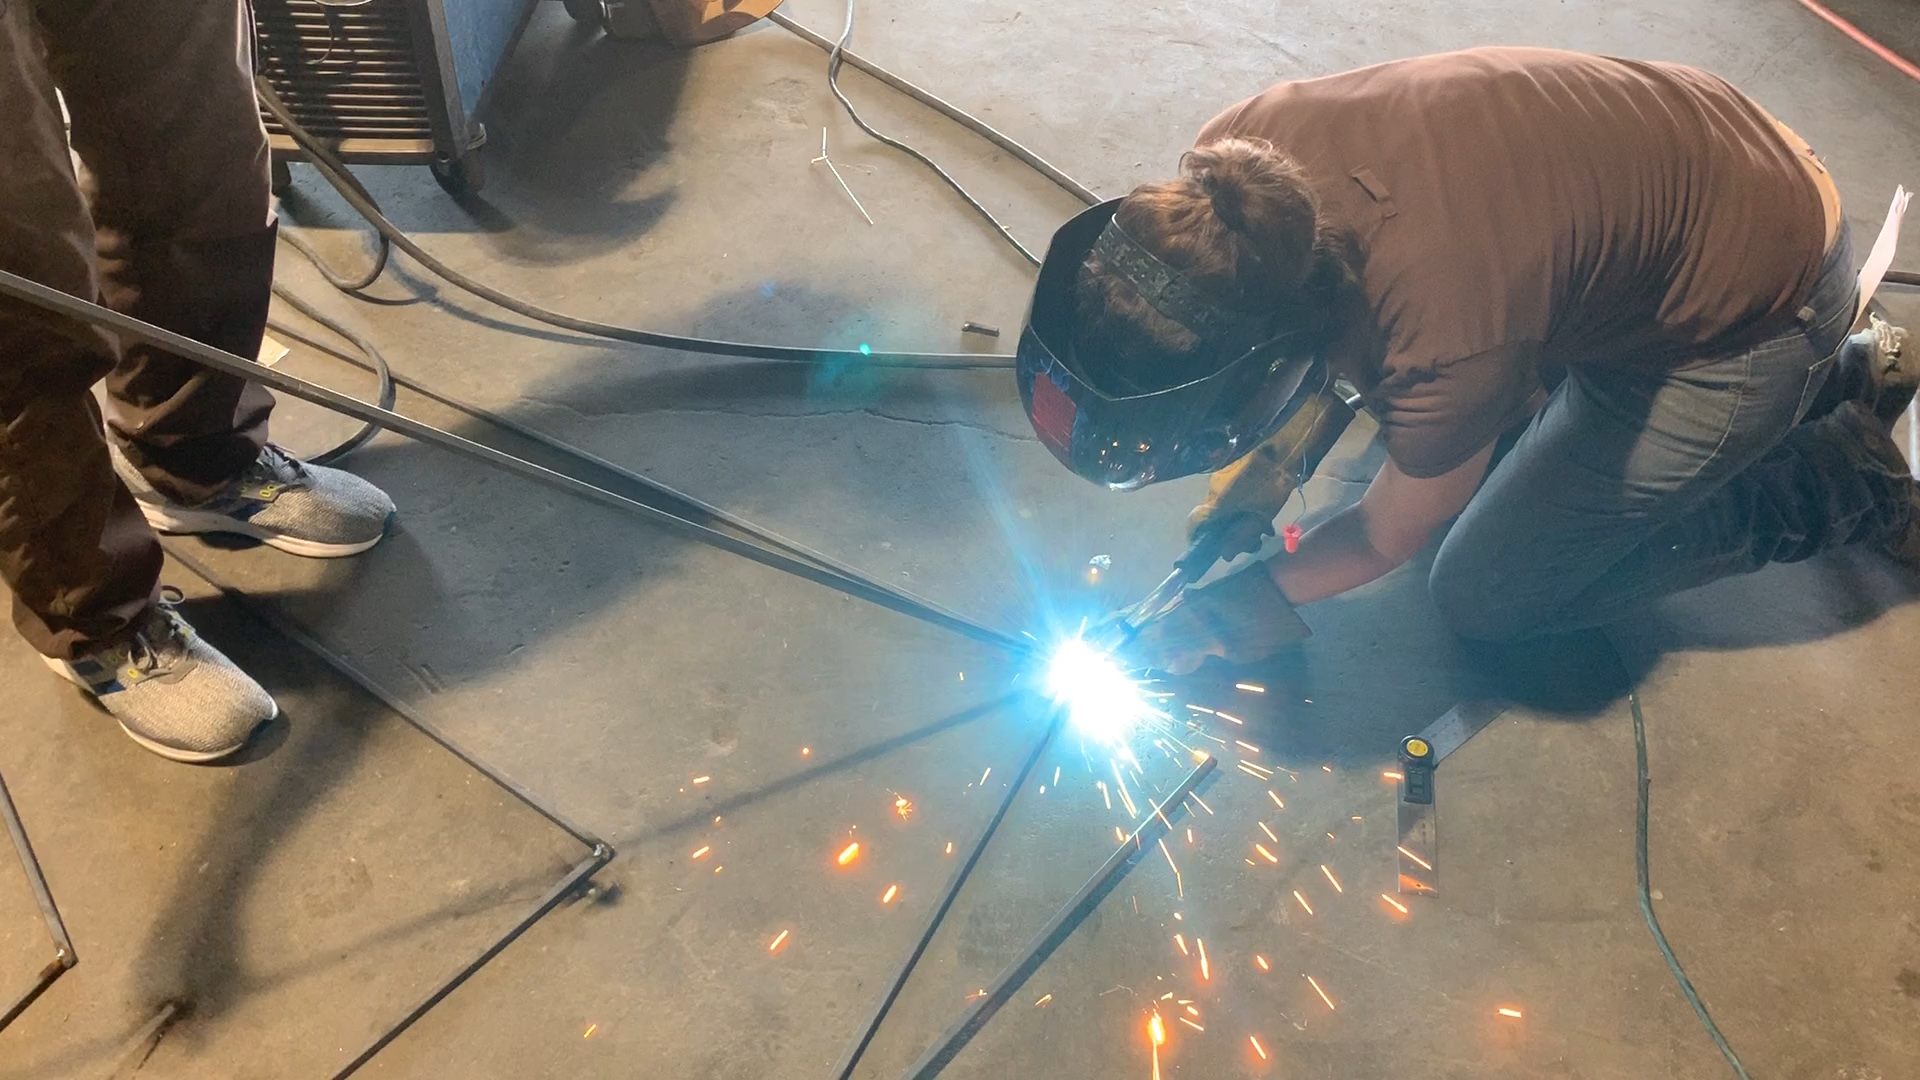 2019-07-01 BVOE Bobo Welding at Off the Walls 07012019 0004.jpg